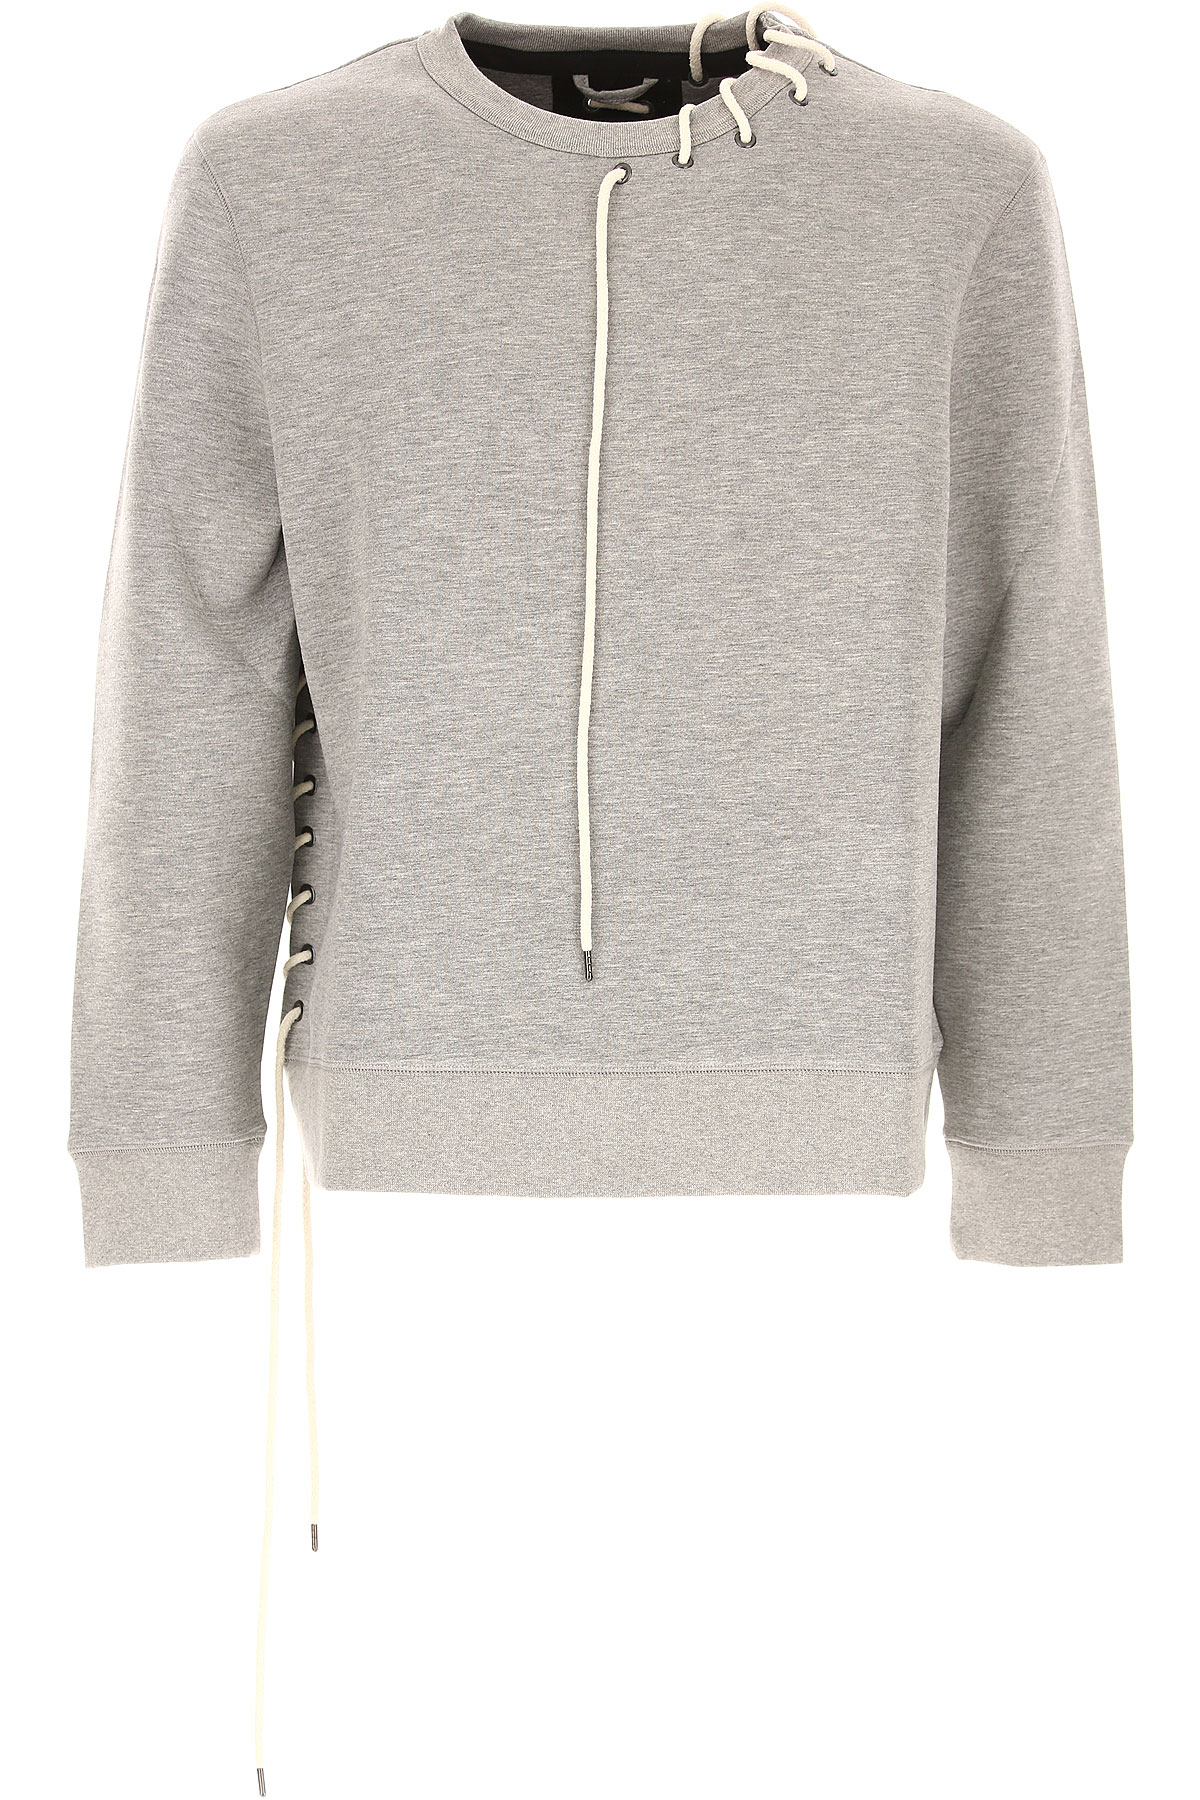 Image of Craig Green Sweatshirt for Men On Sale, Grey, Cotton, 2017, L M S